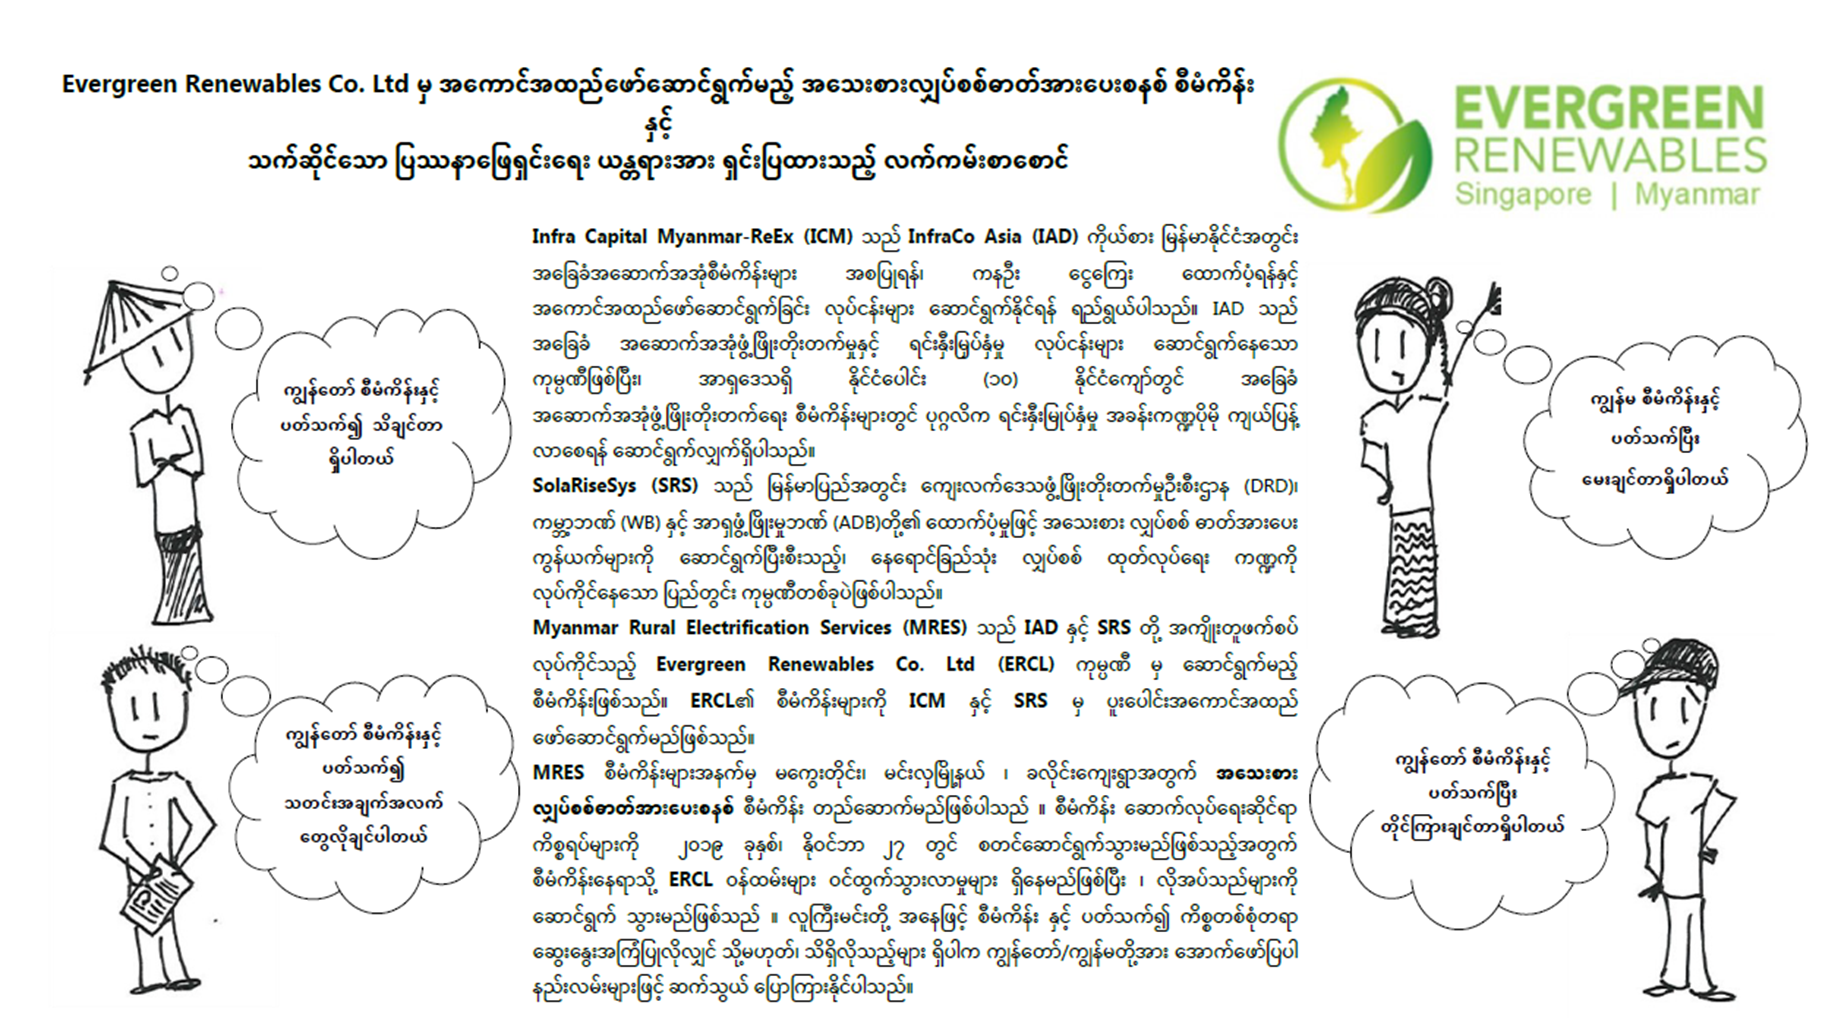 Cartoons were shown to improve the uptake of informational leaflets, including this grievance redressal mechanism developed by ICM, for InfraCo Asia's Myanmar Rural Electrification Services project.